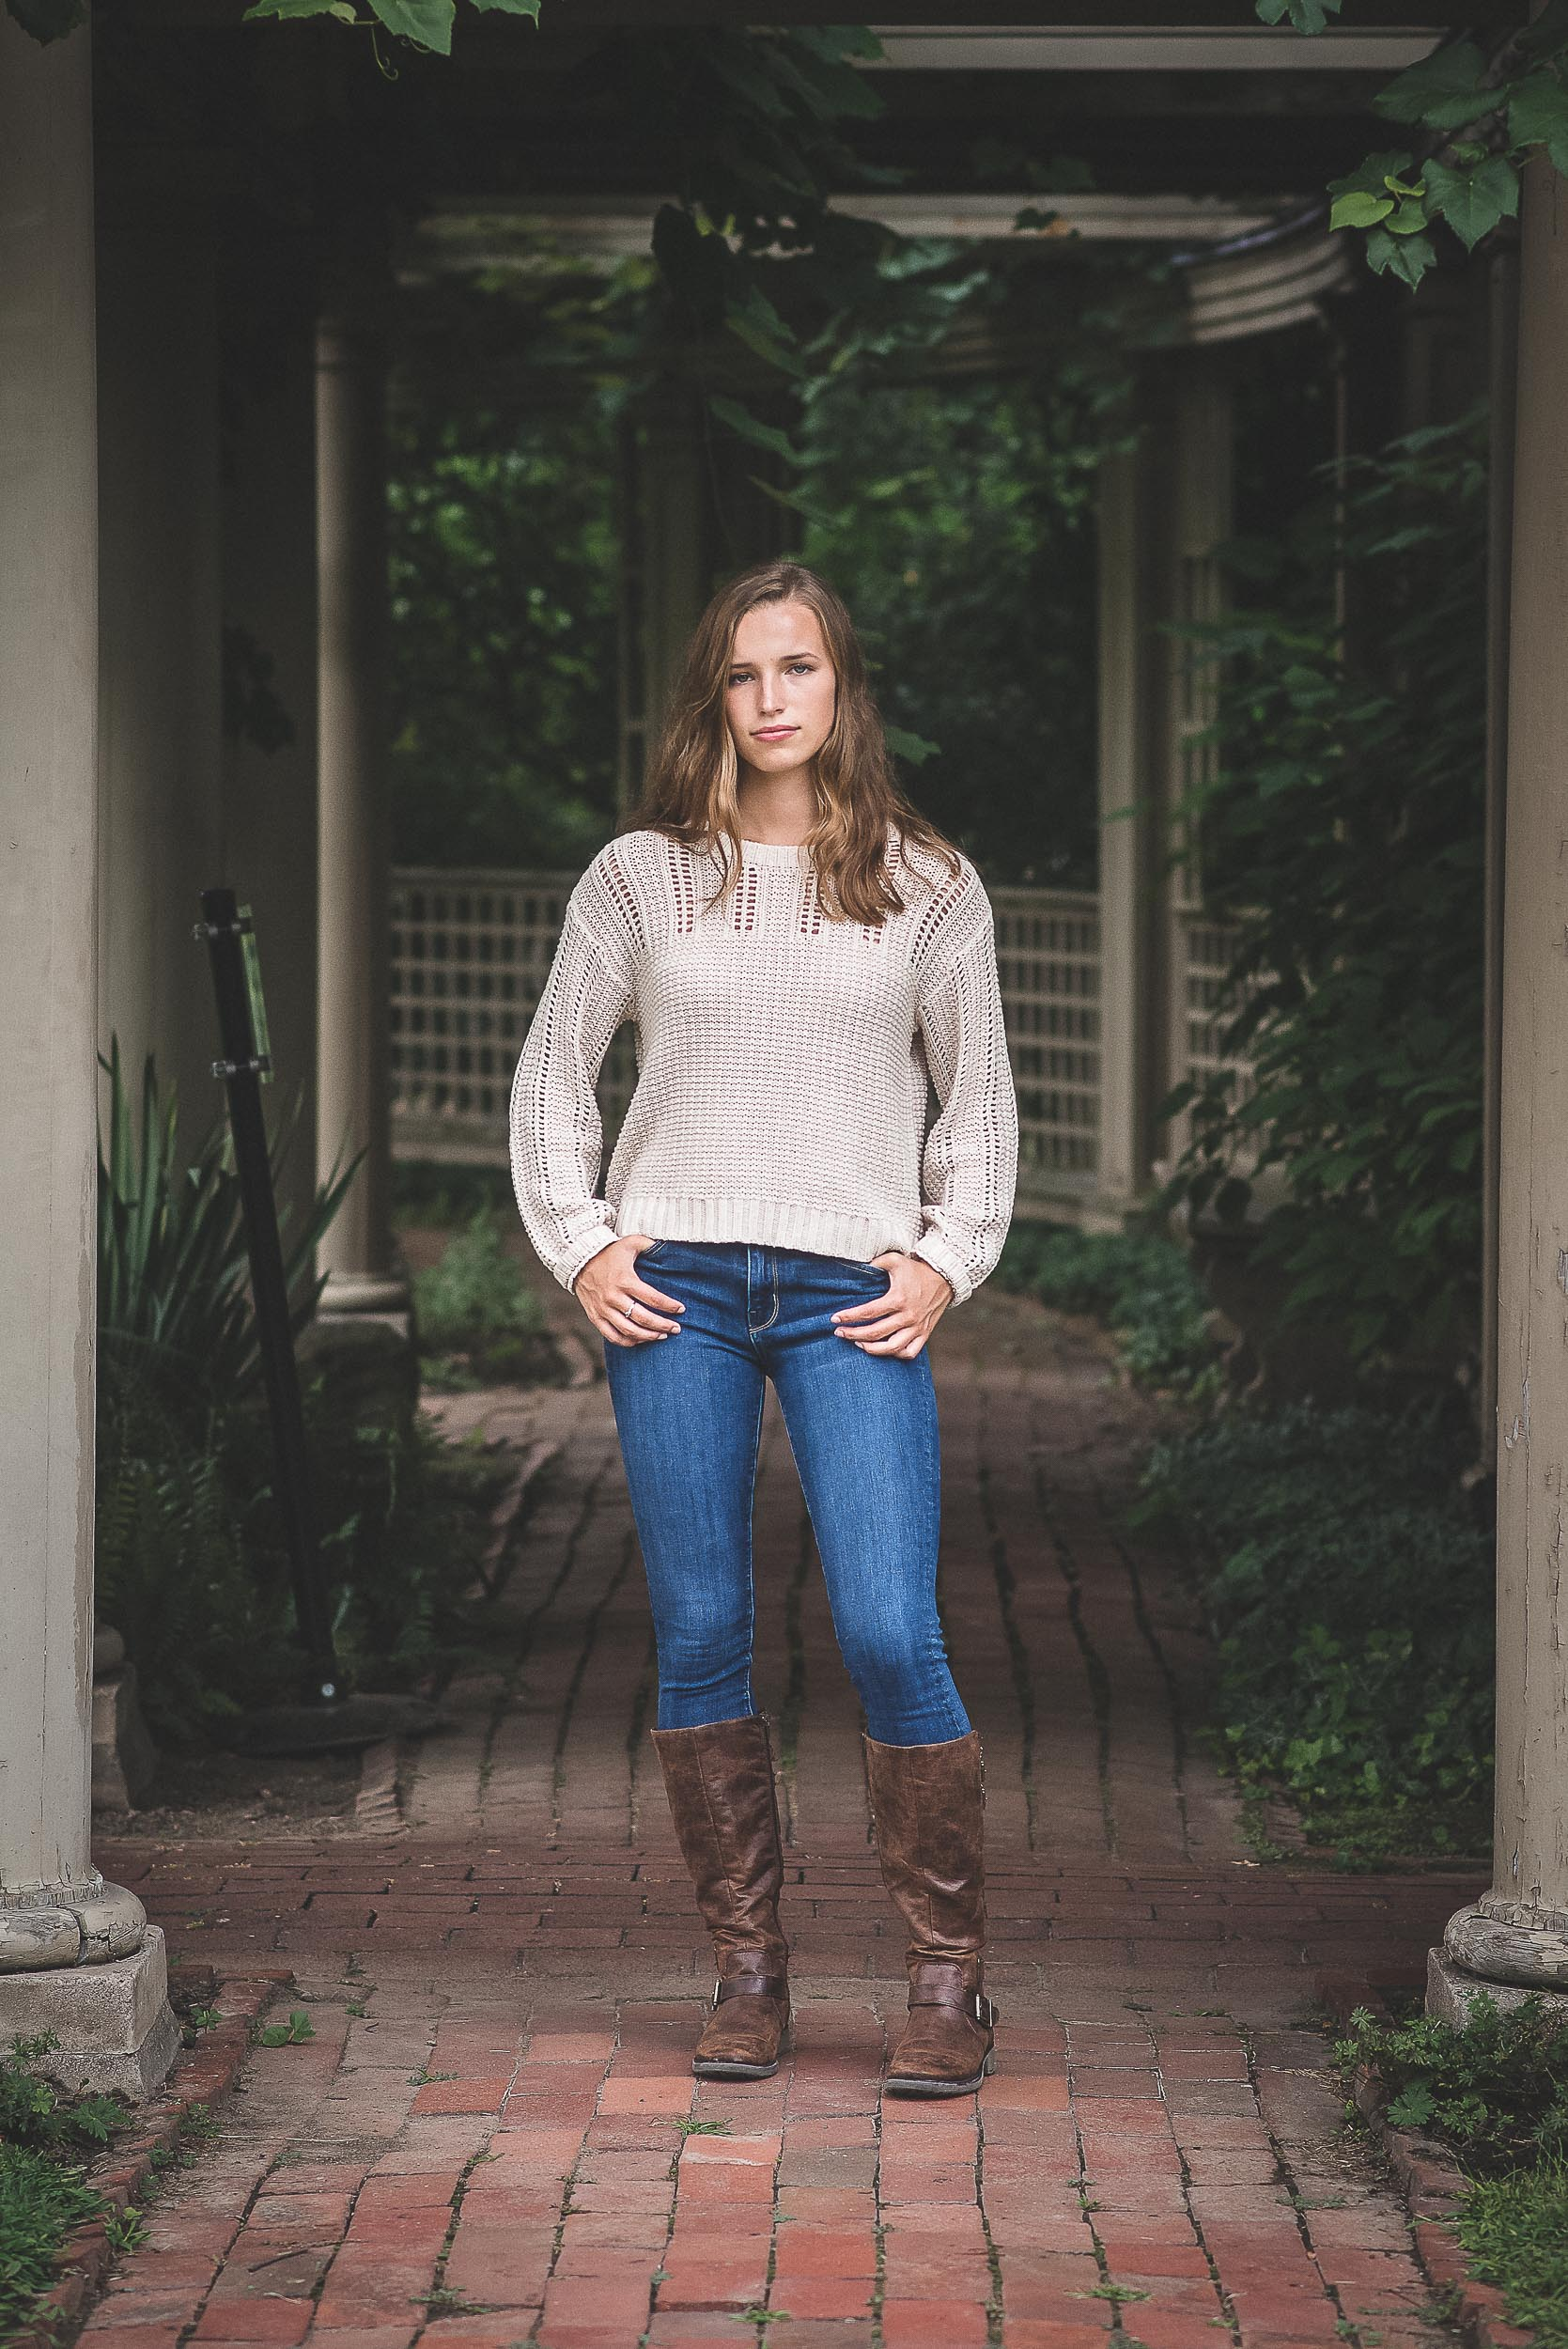 suzanne-neace-photography-senior-portraits-2797.jpg